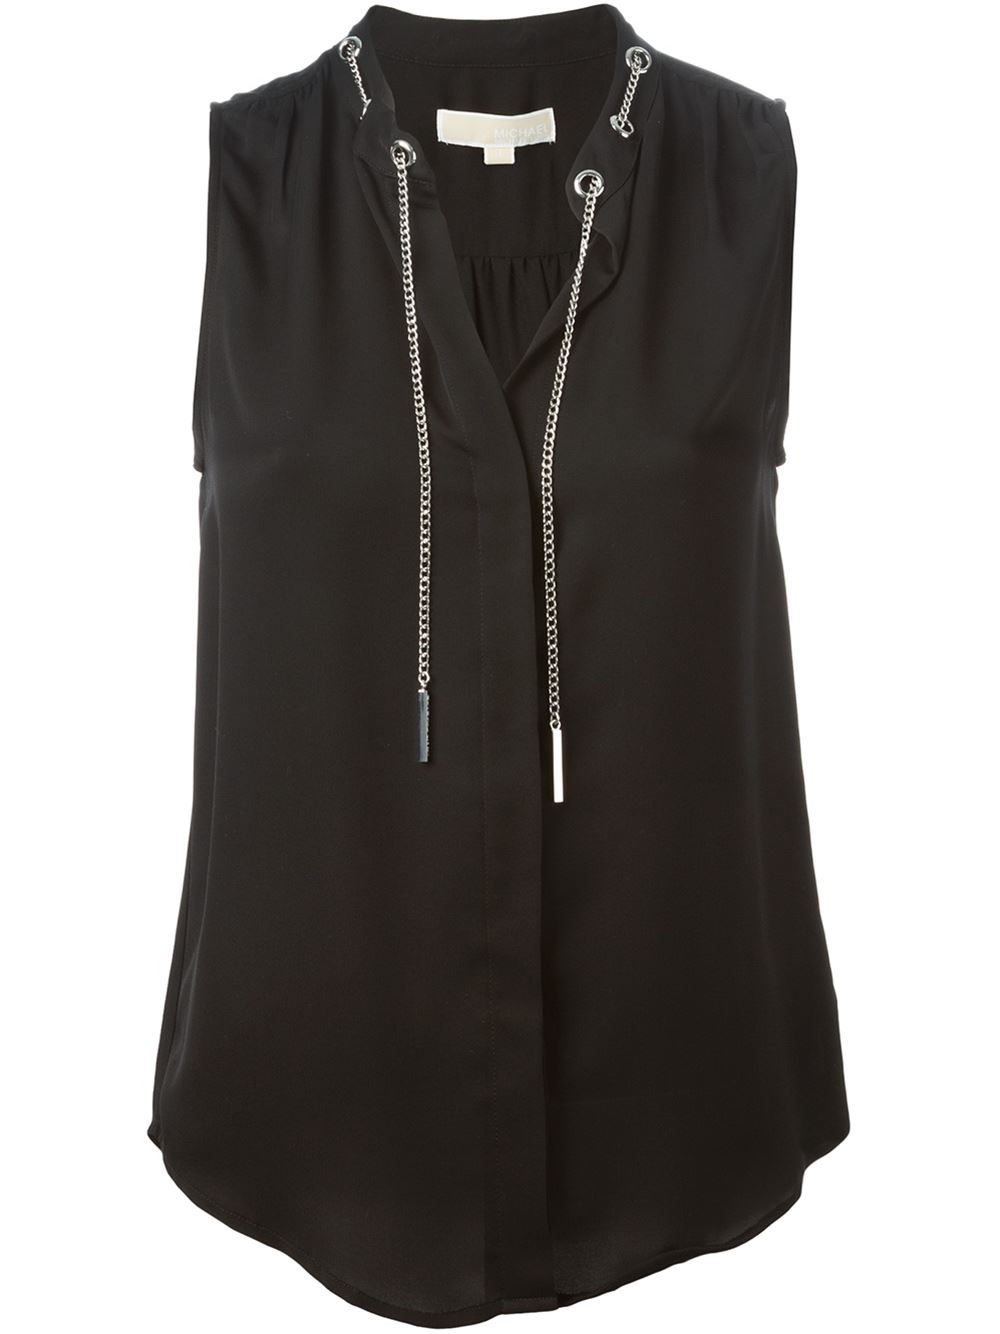 michael michael kors chain and eyelet detail blouse in black lyst. Black Bedroom Furniture Sets. Home Design Ideas